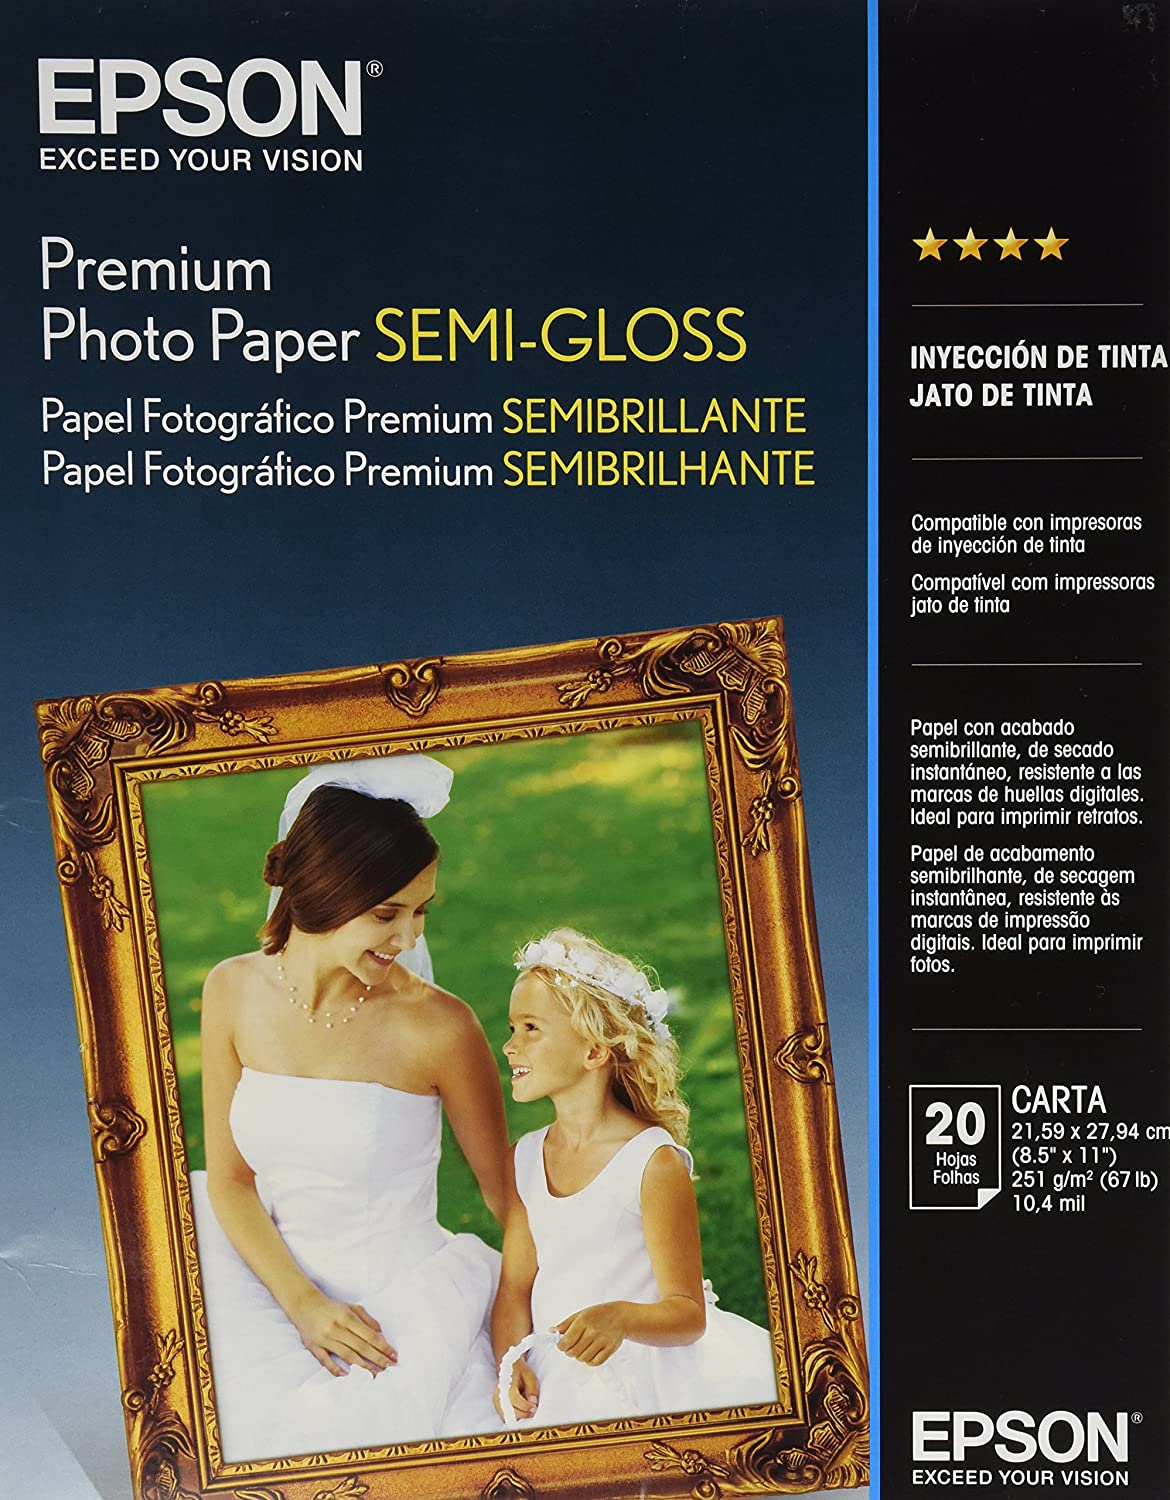 Gloss Paper Photo Paper Semi-gloss